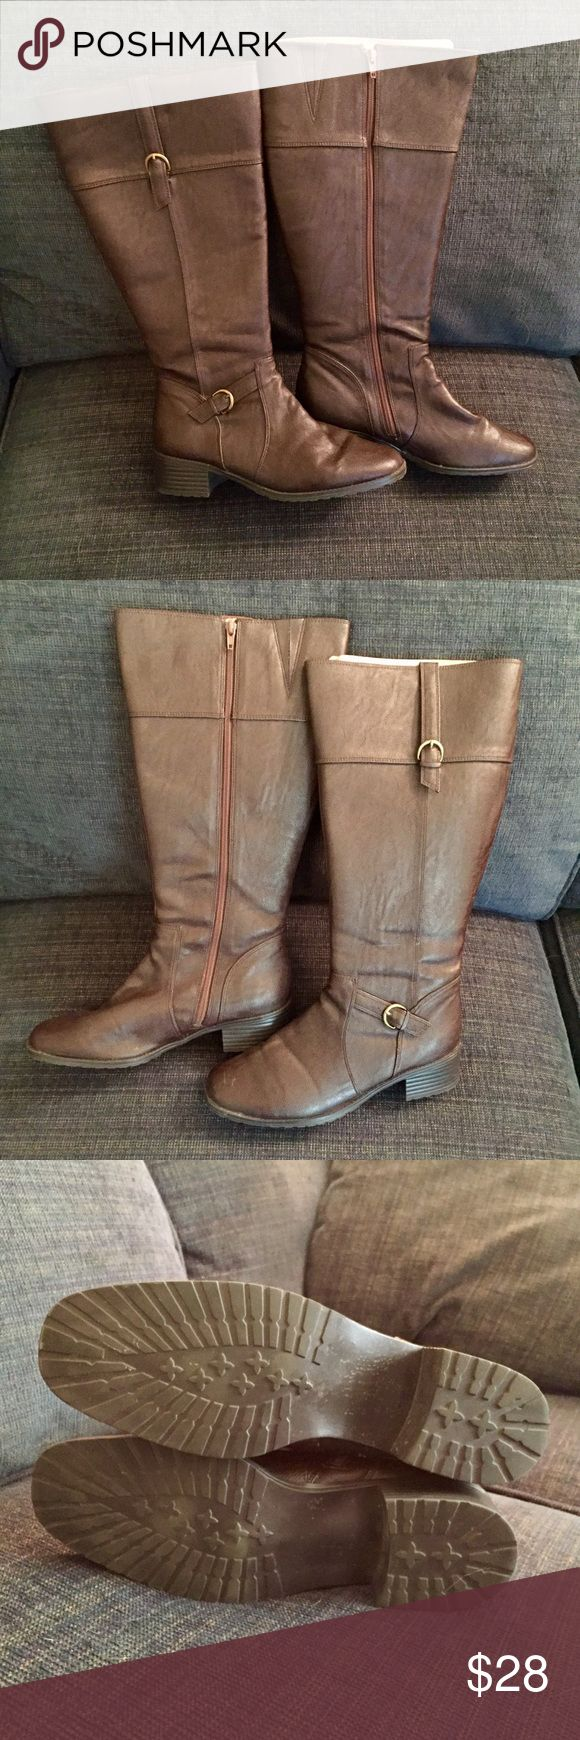 BOUQUET Brown Riding Boots BOUQUET Boots - Women's size 10M - Dark brown, zips up inside - Detailed with seams and buckles - worn a few times, great condition! Bouquet Shoes